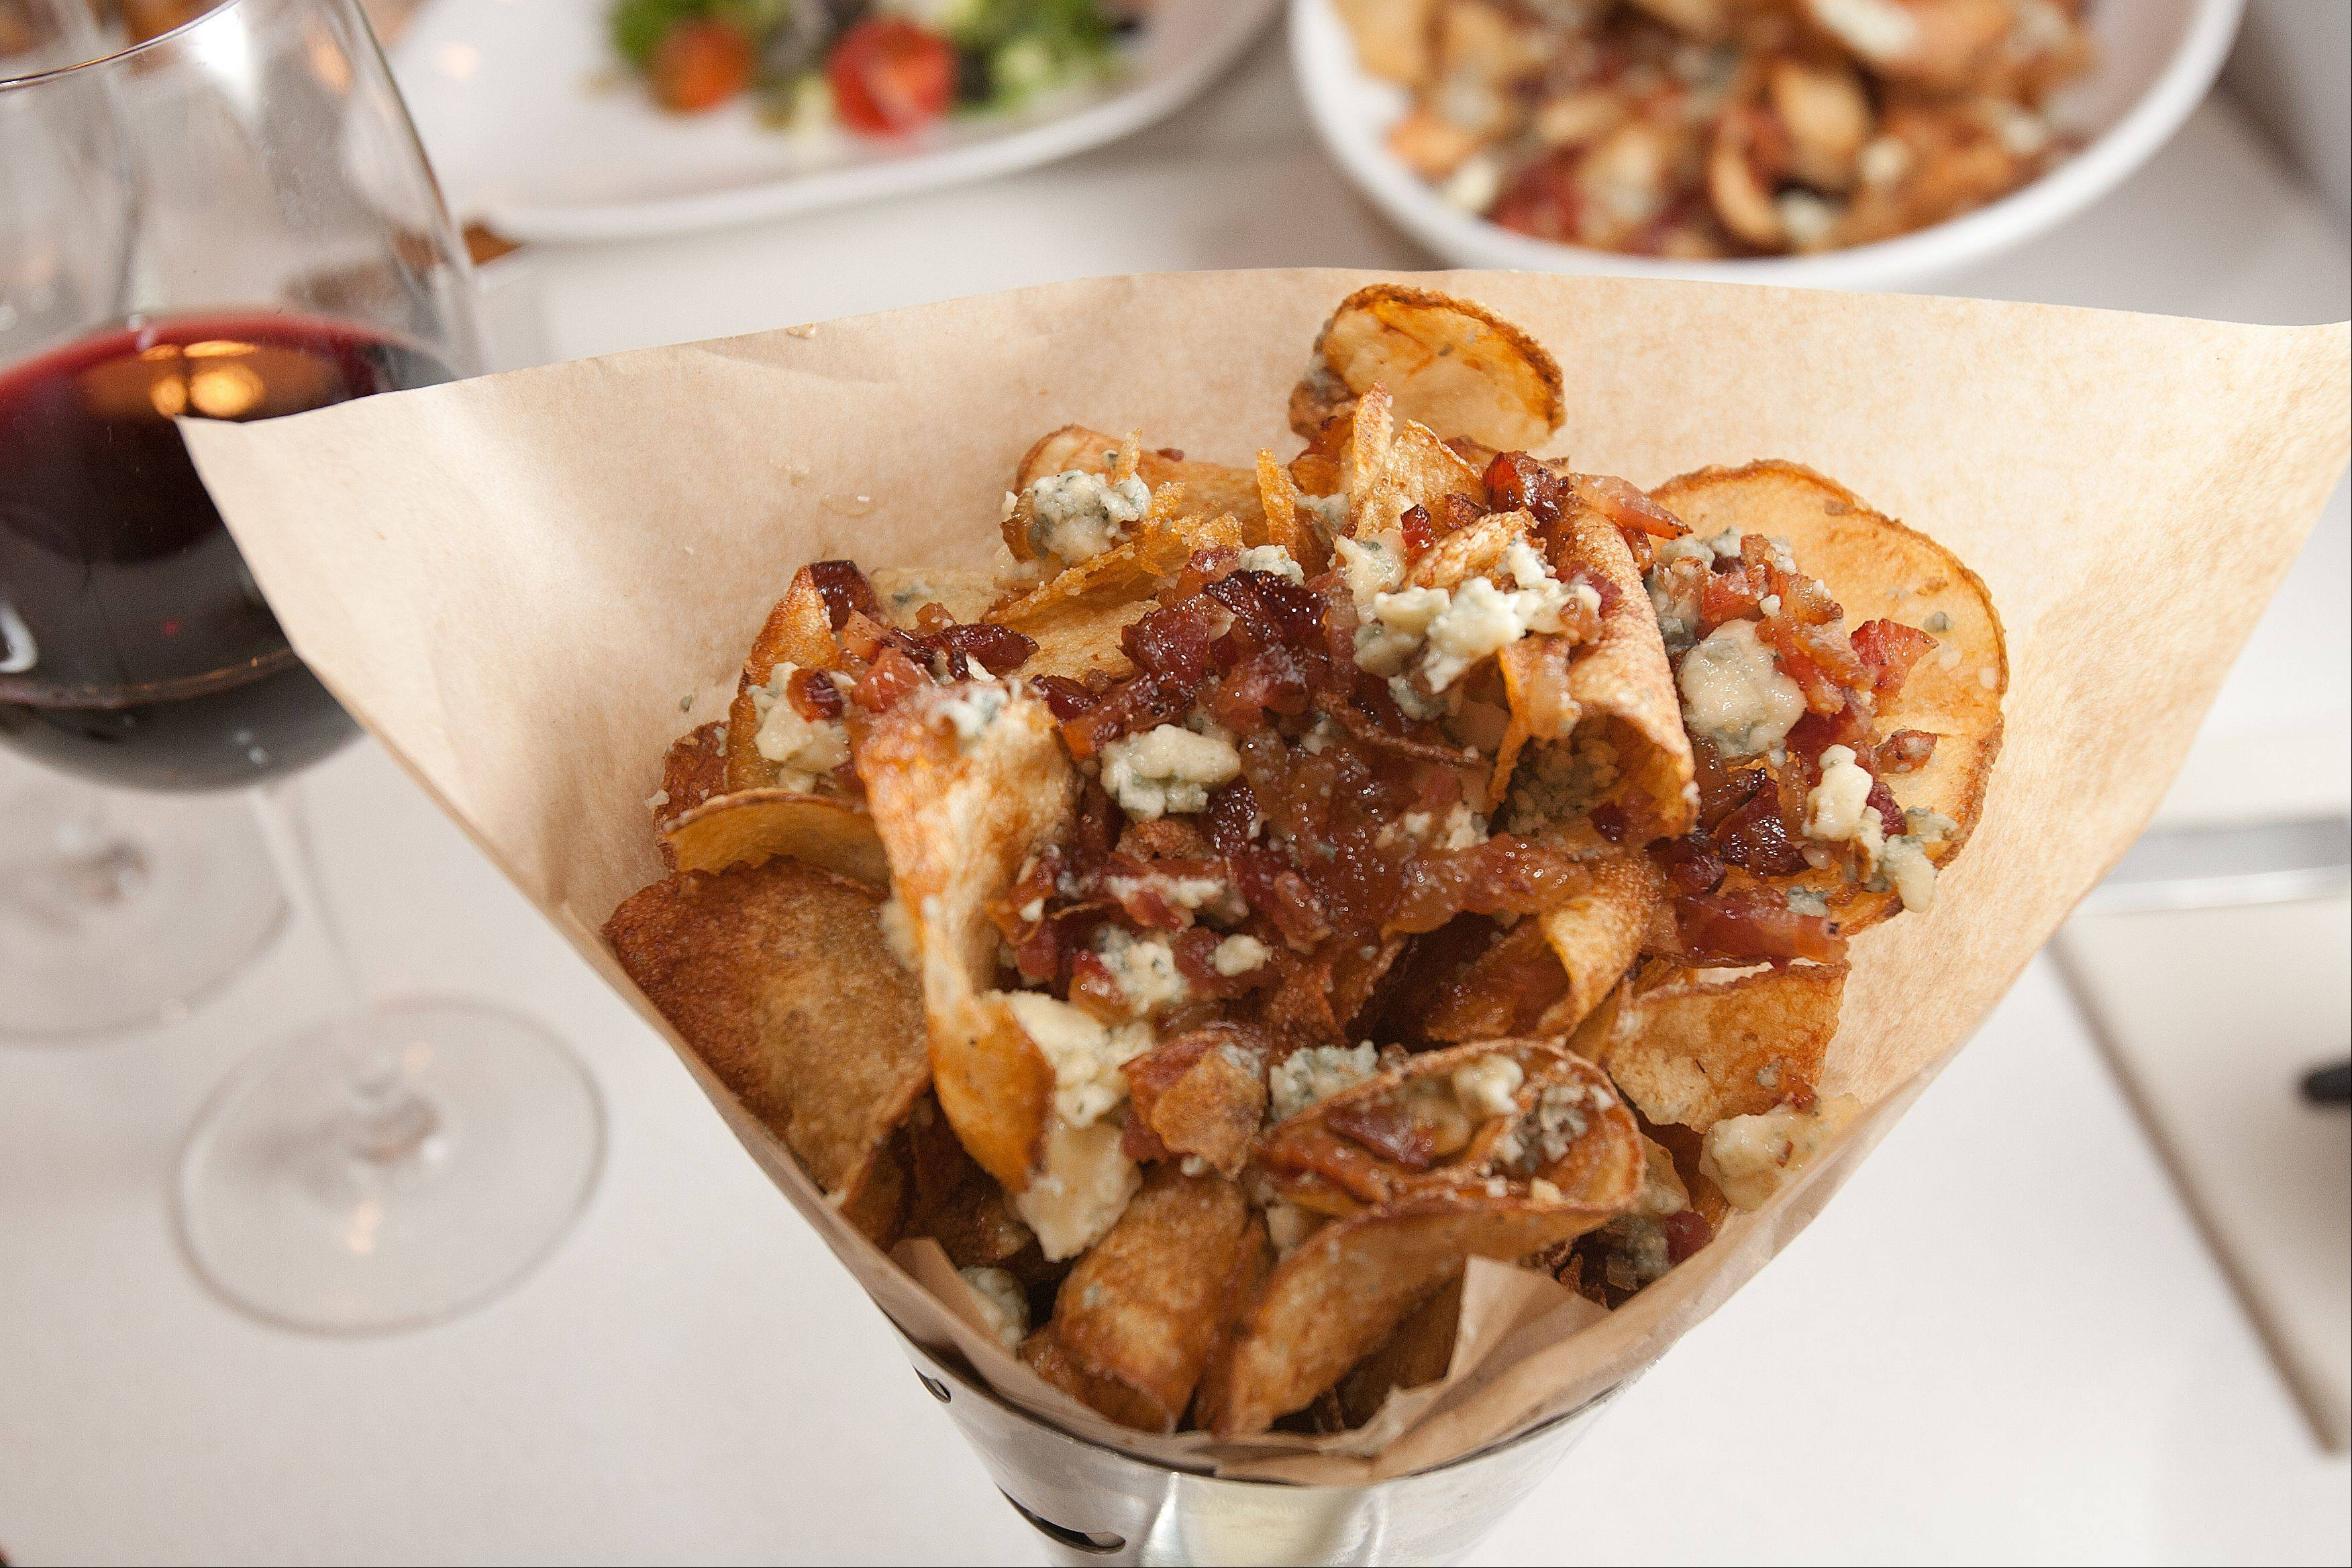 Artisan Table's house-made chips come topped with crumbled blue cheese and caramelized bacon.